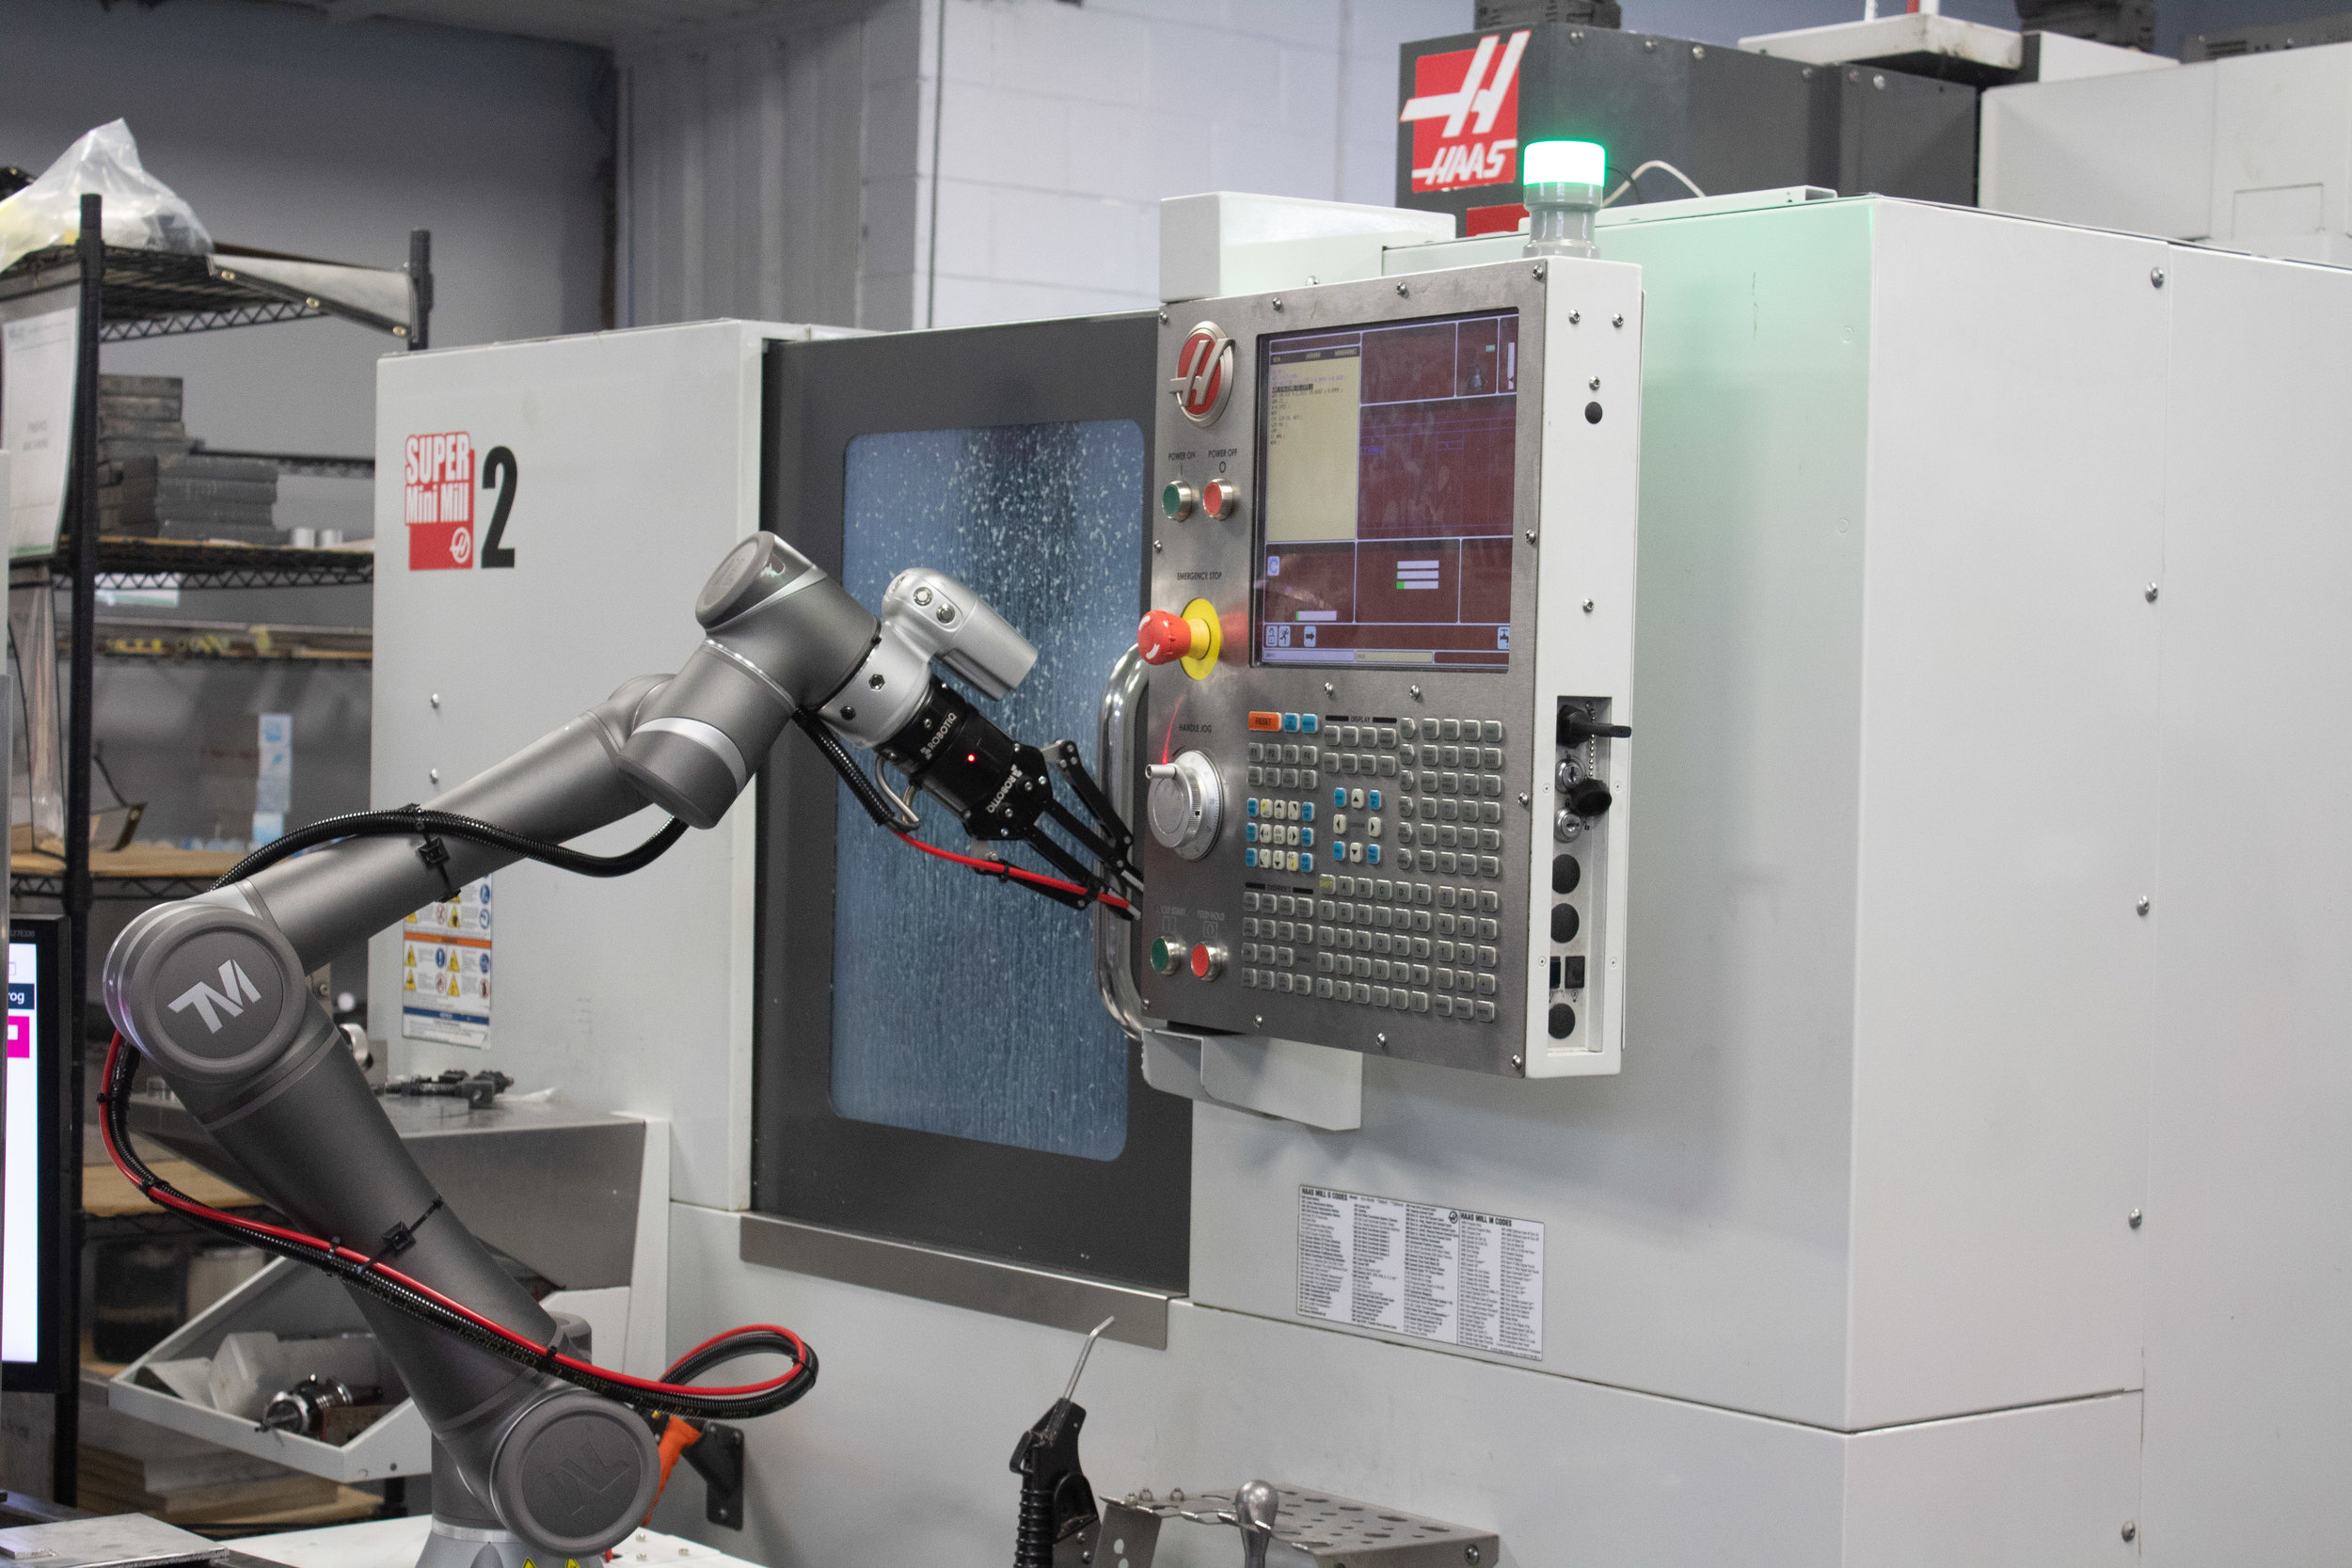 Custom Equipment Solutions - Kelley Engineering wants to partner with you to design, build, and integrate custom solutions to automate and expedite your manufacturing process.